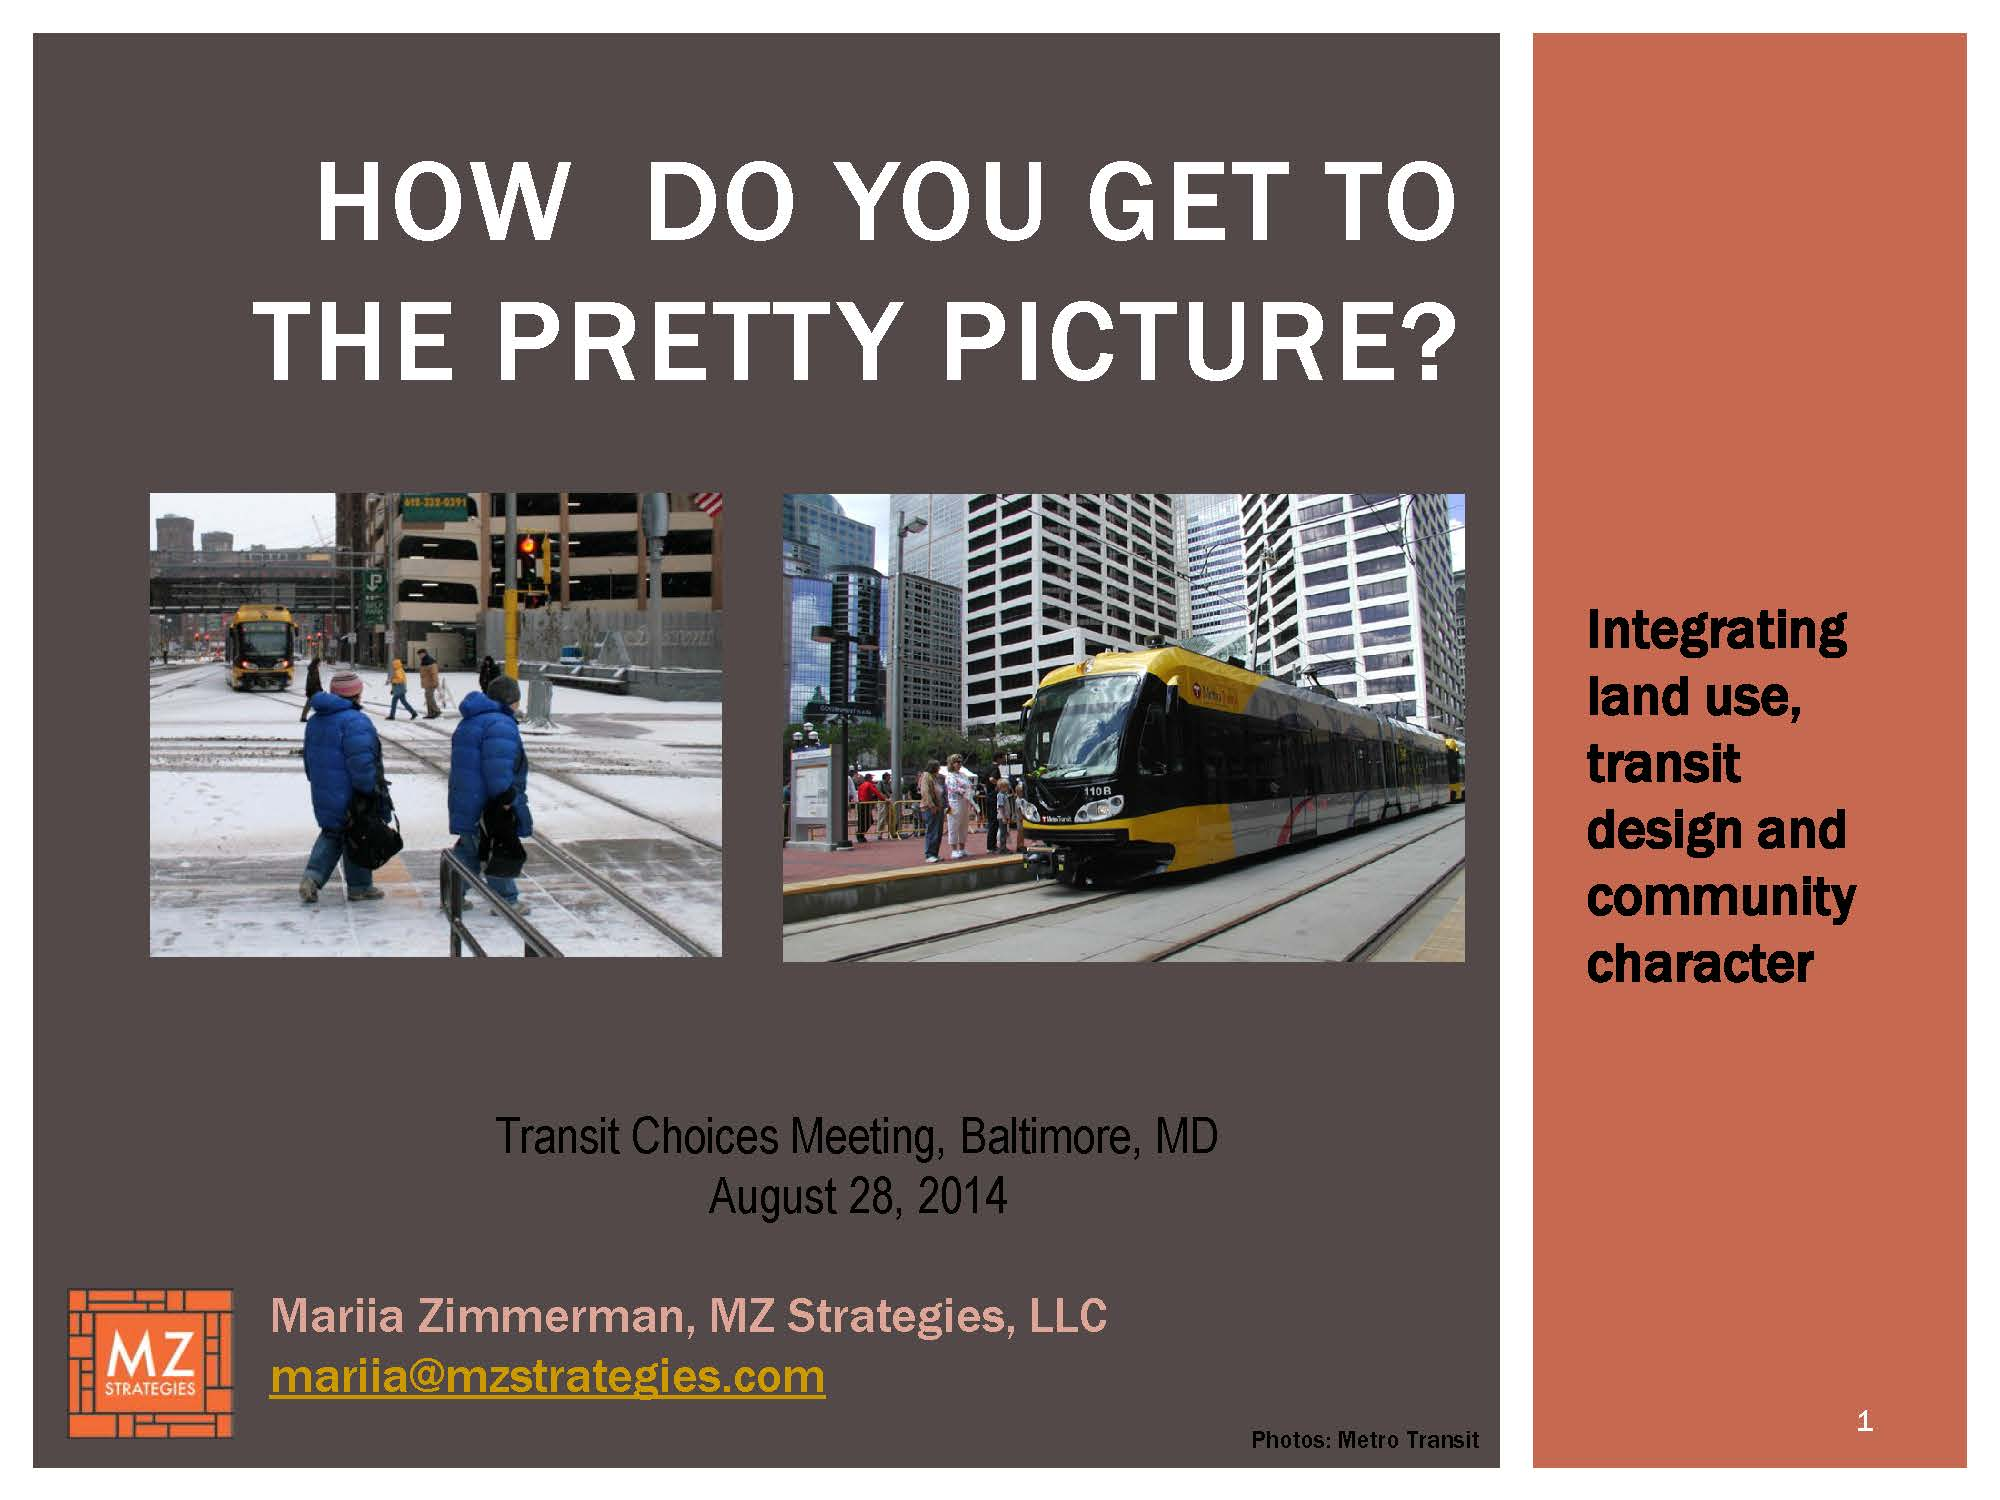 Click here to see my recent presentation to the Transit Choices Coalition in Baltimore on goals and strategies to create community-oriented transit through integrating transit, land use, design and community character.